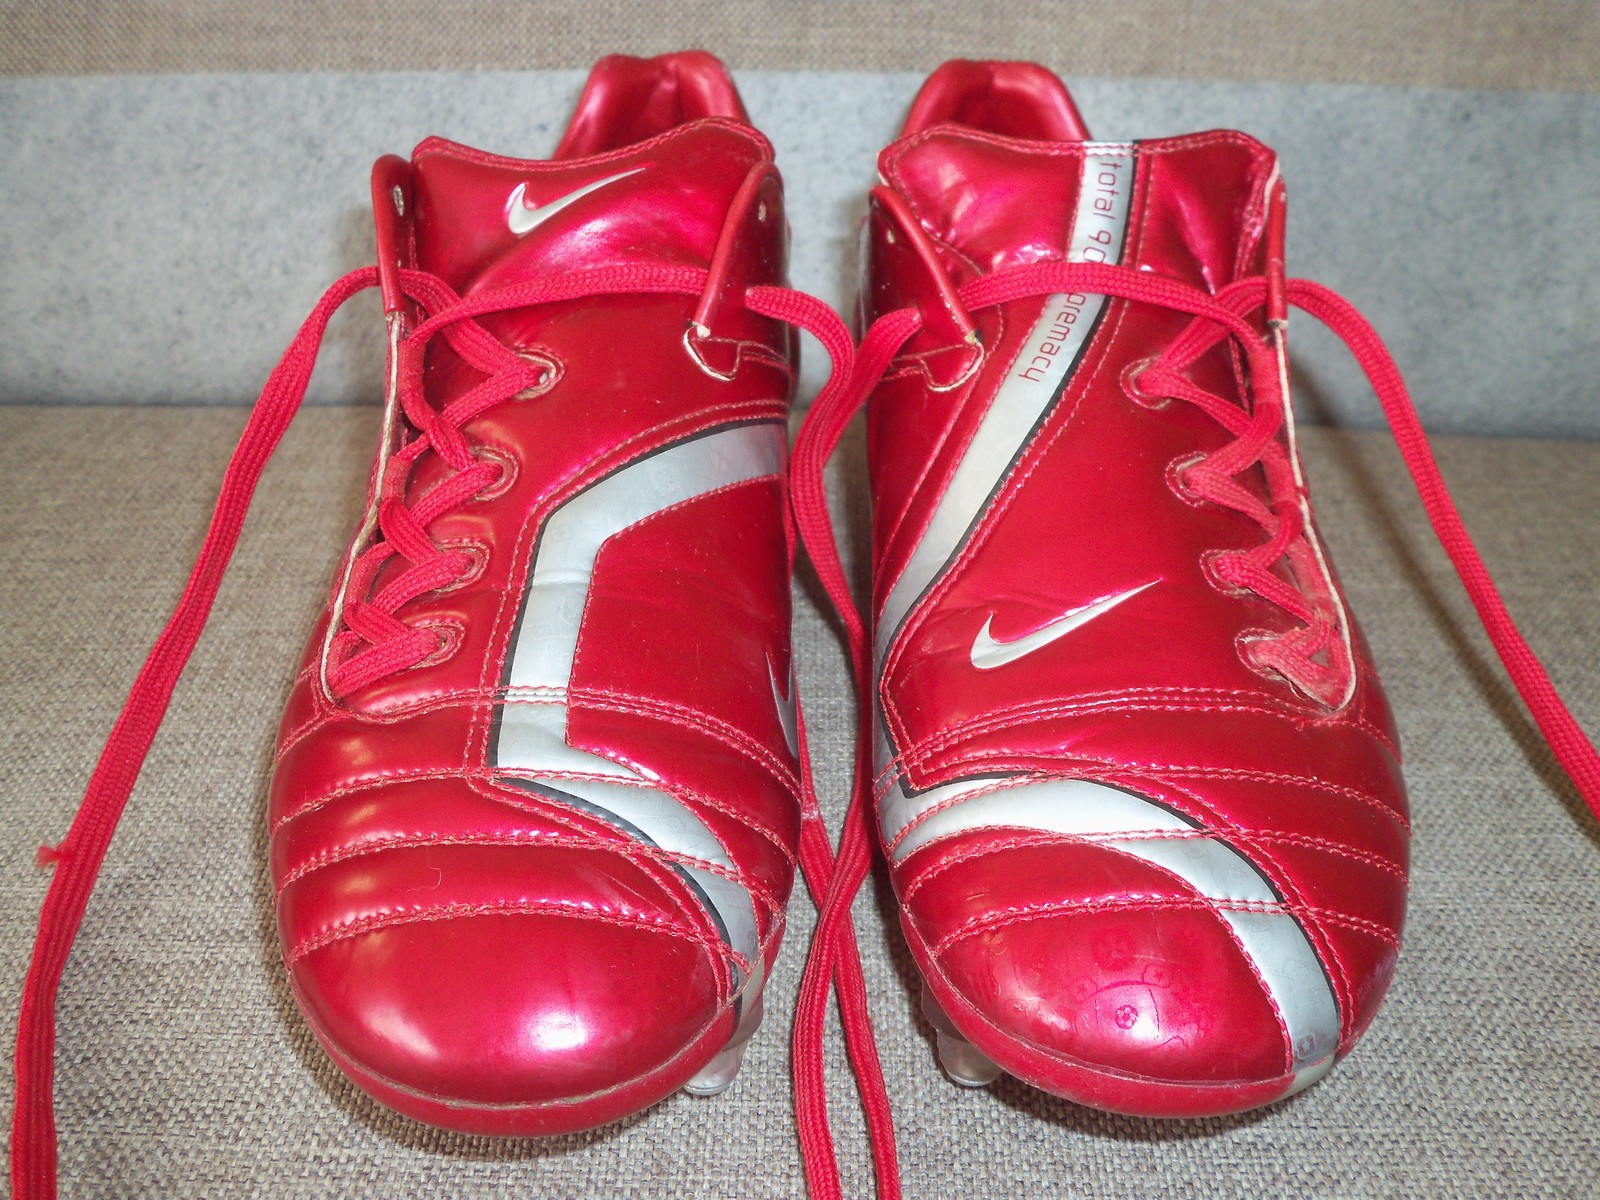 2ec507d351a7 ... uk nike air zoom total 90 supremacy sg uk 7.5 us 8.5 football boots  soccer cleats